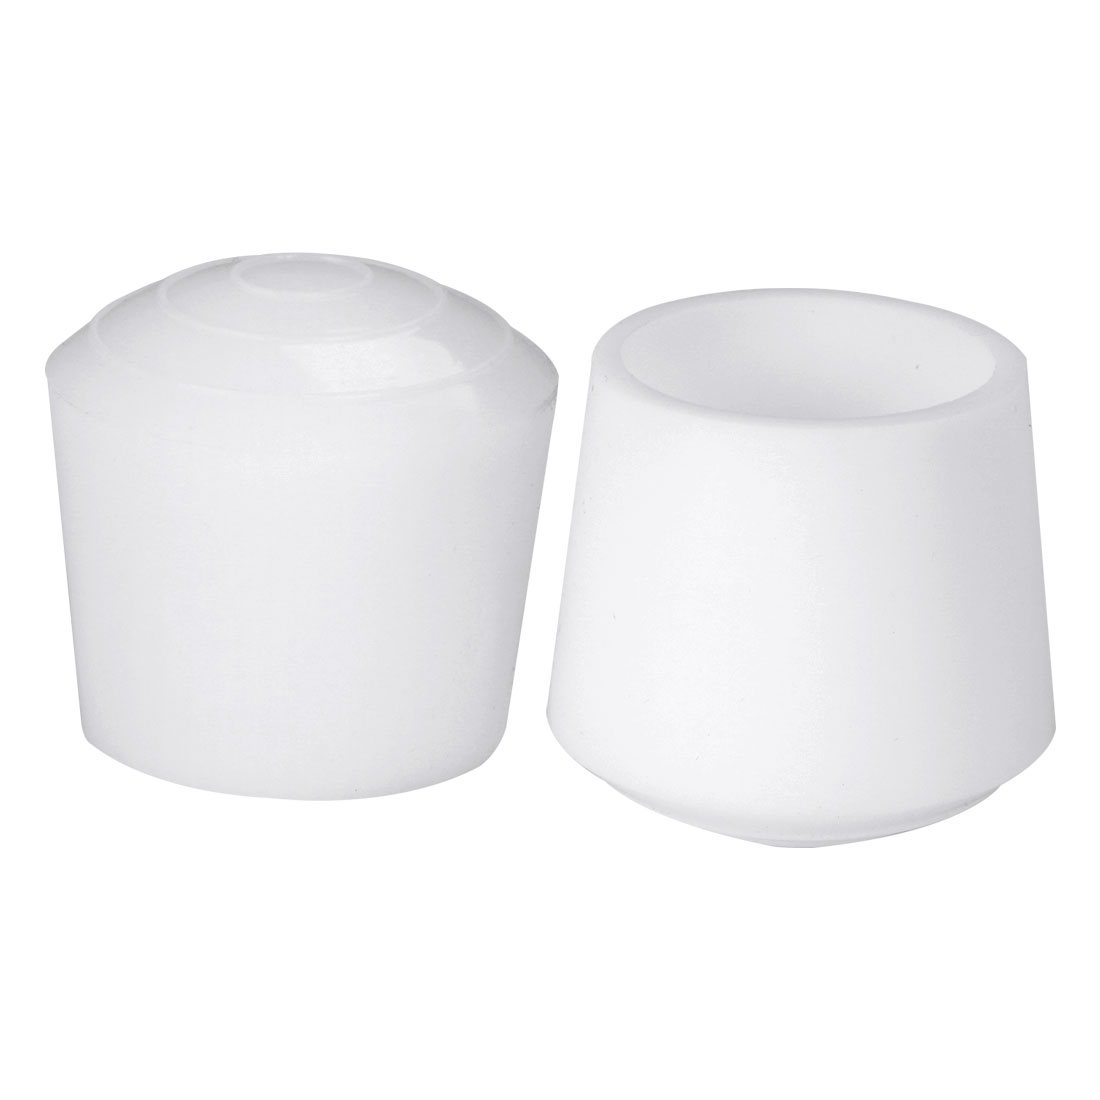 "Rubber Leg Caps Tip Cup Feet Cover 32mm 1 1/4"" Inner Dia 2pcs for Furniture Desk - image 7 of 7"